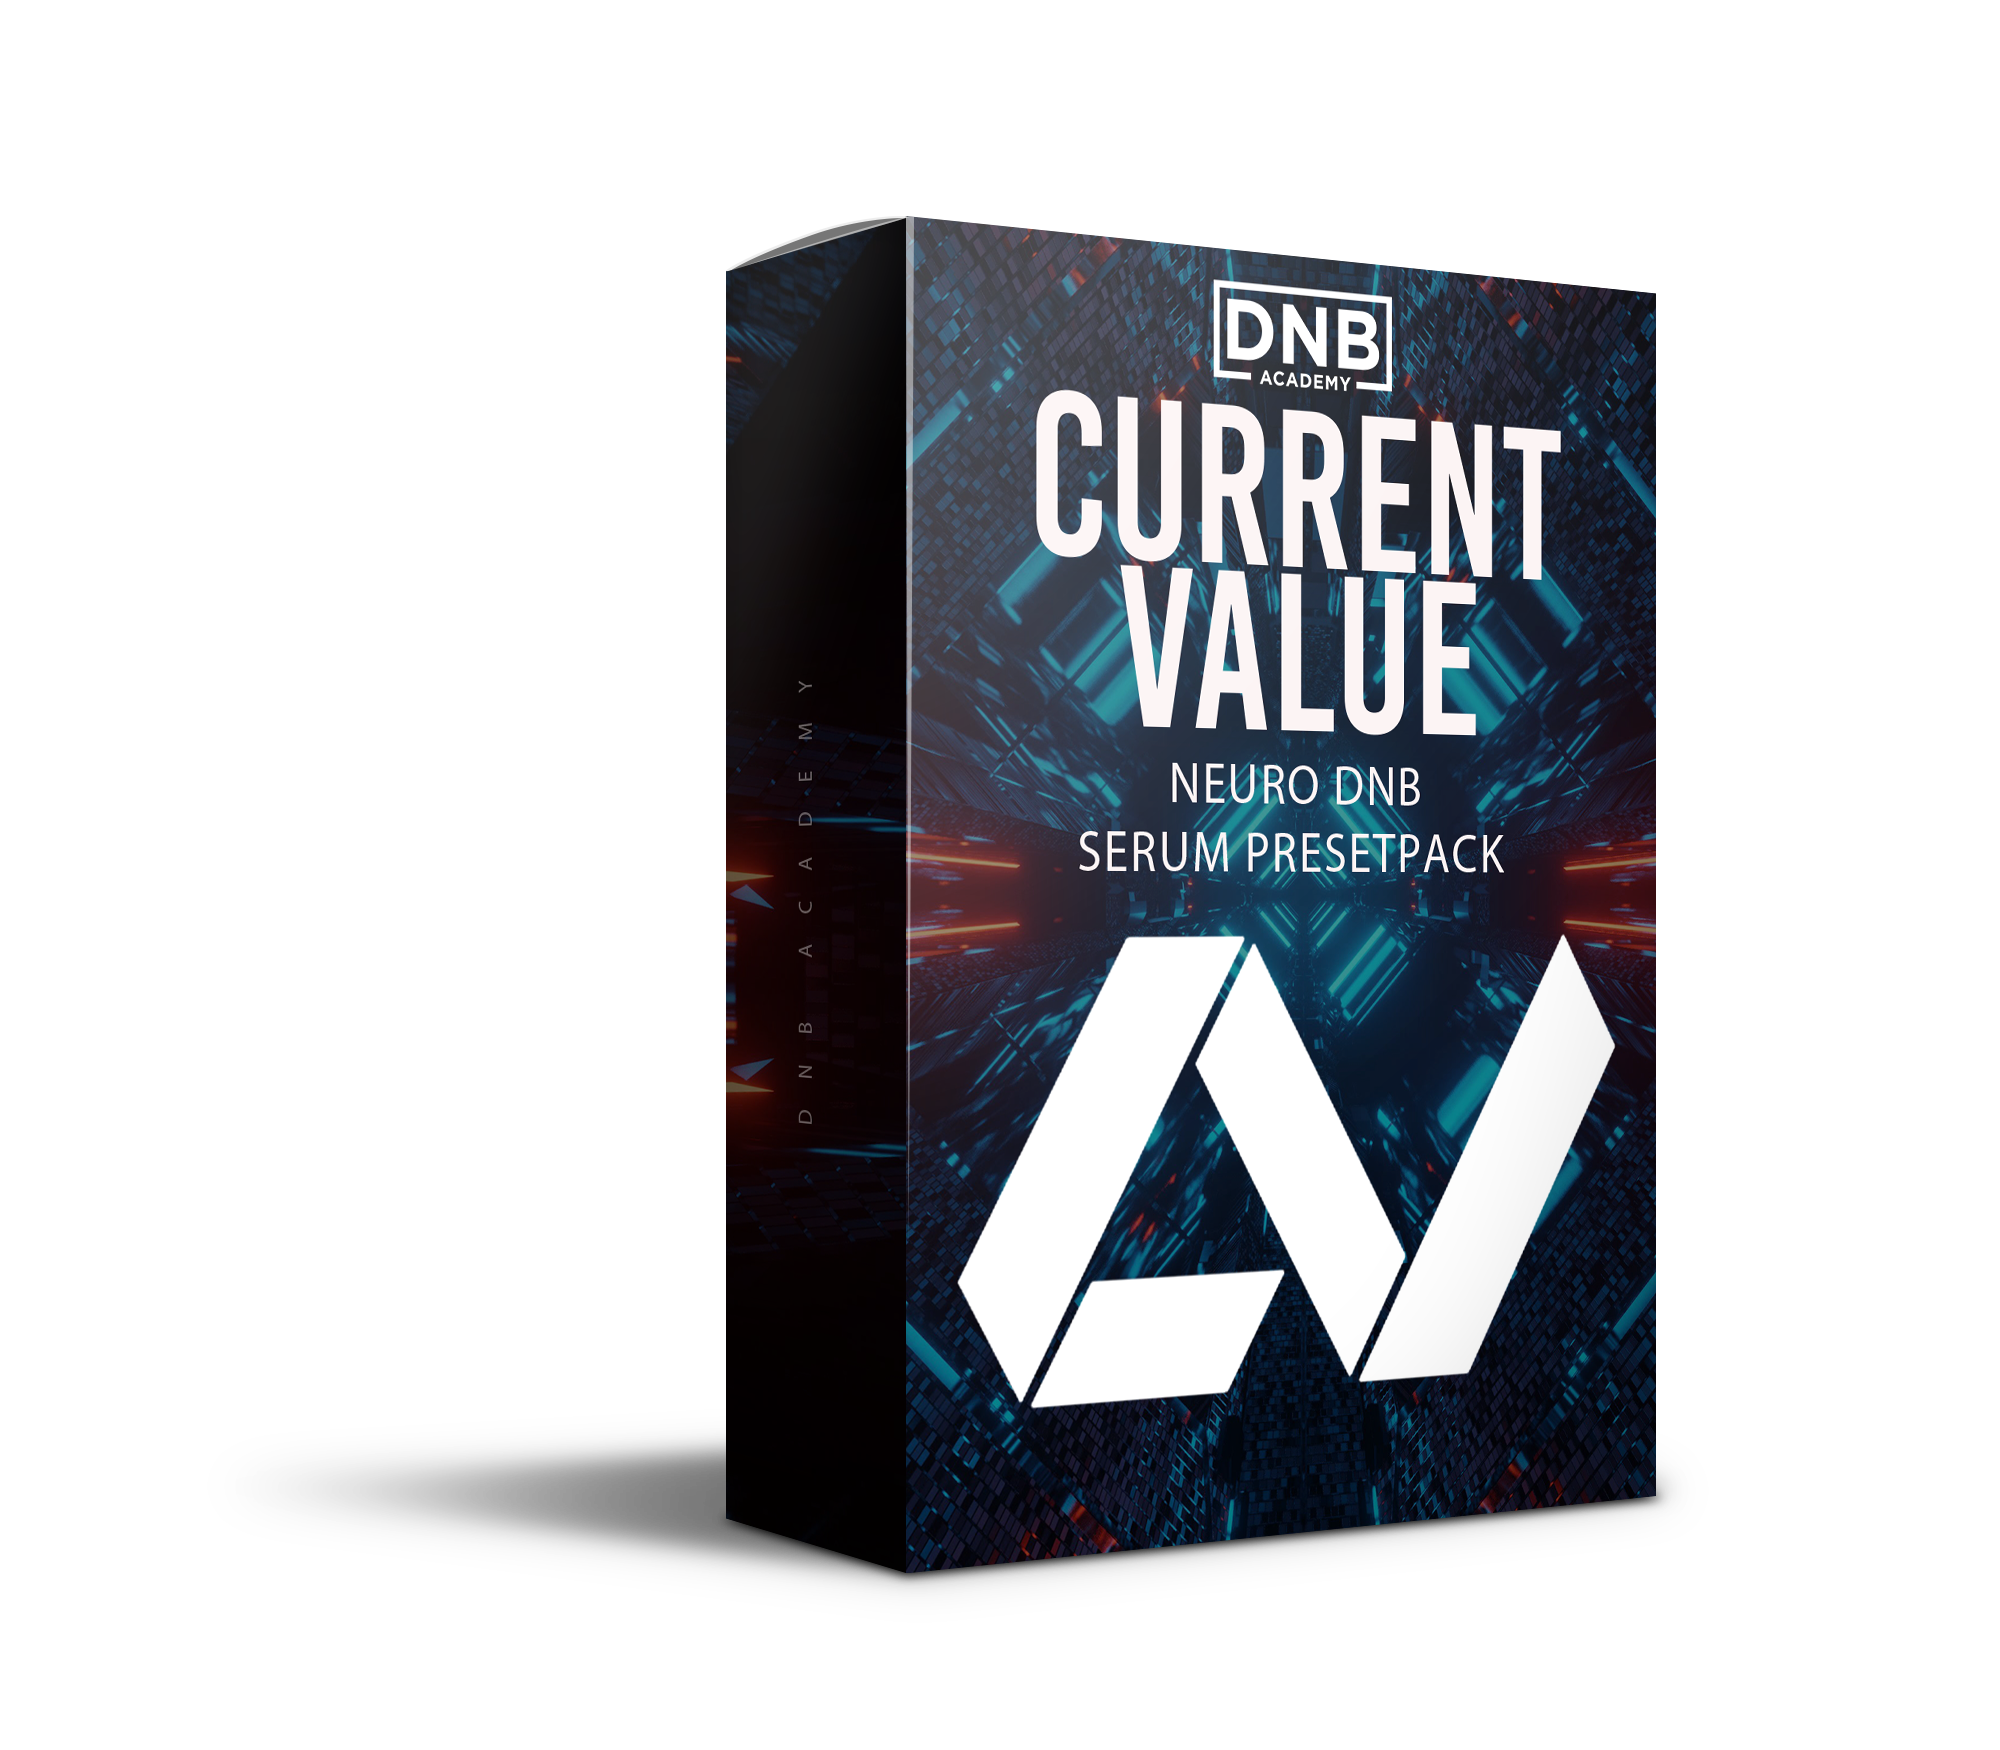 DNB Academy - Current Value Mockup 1